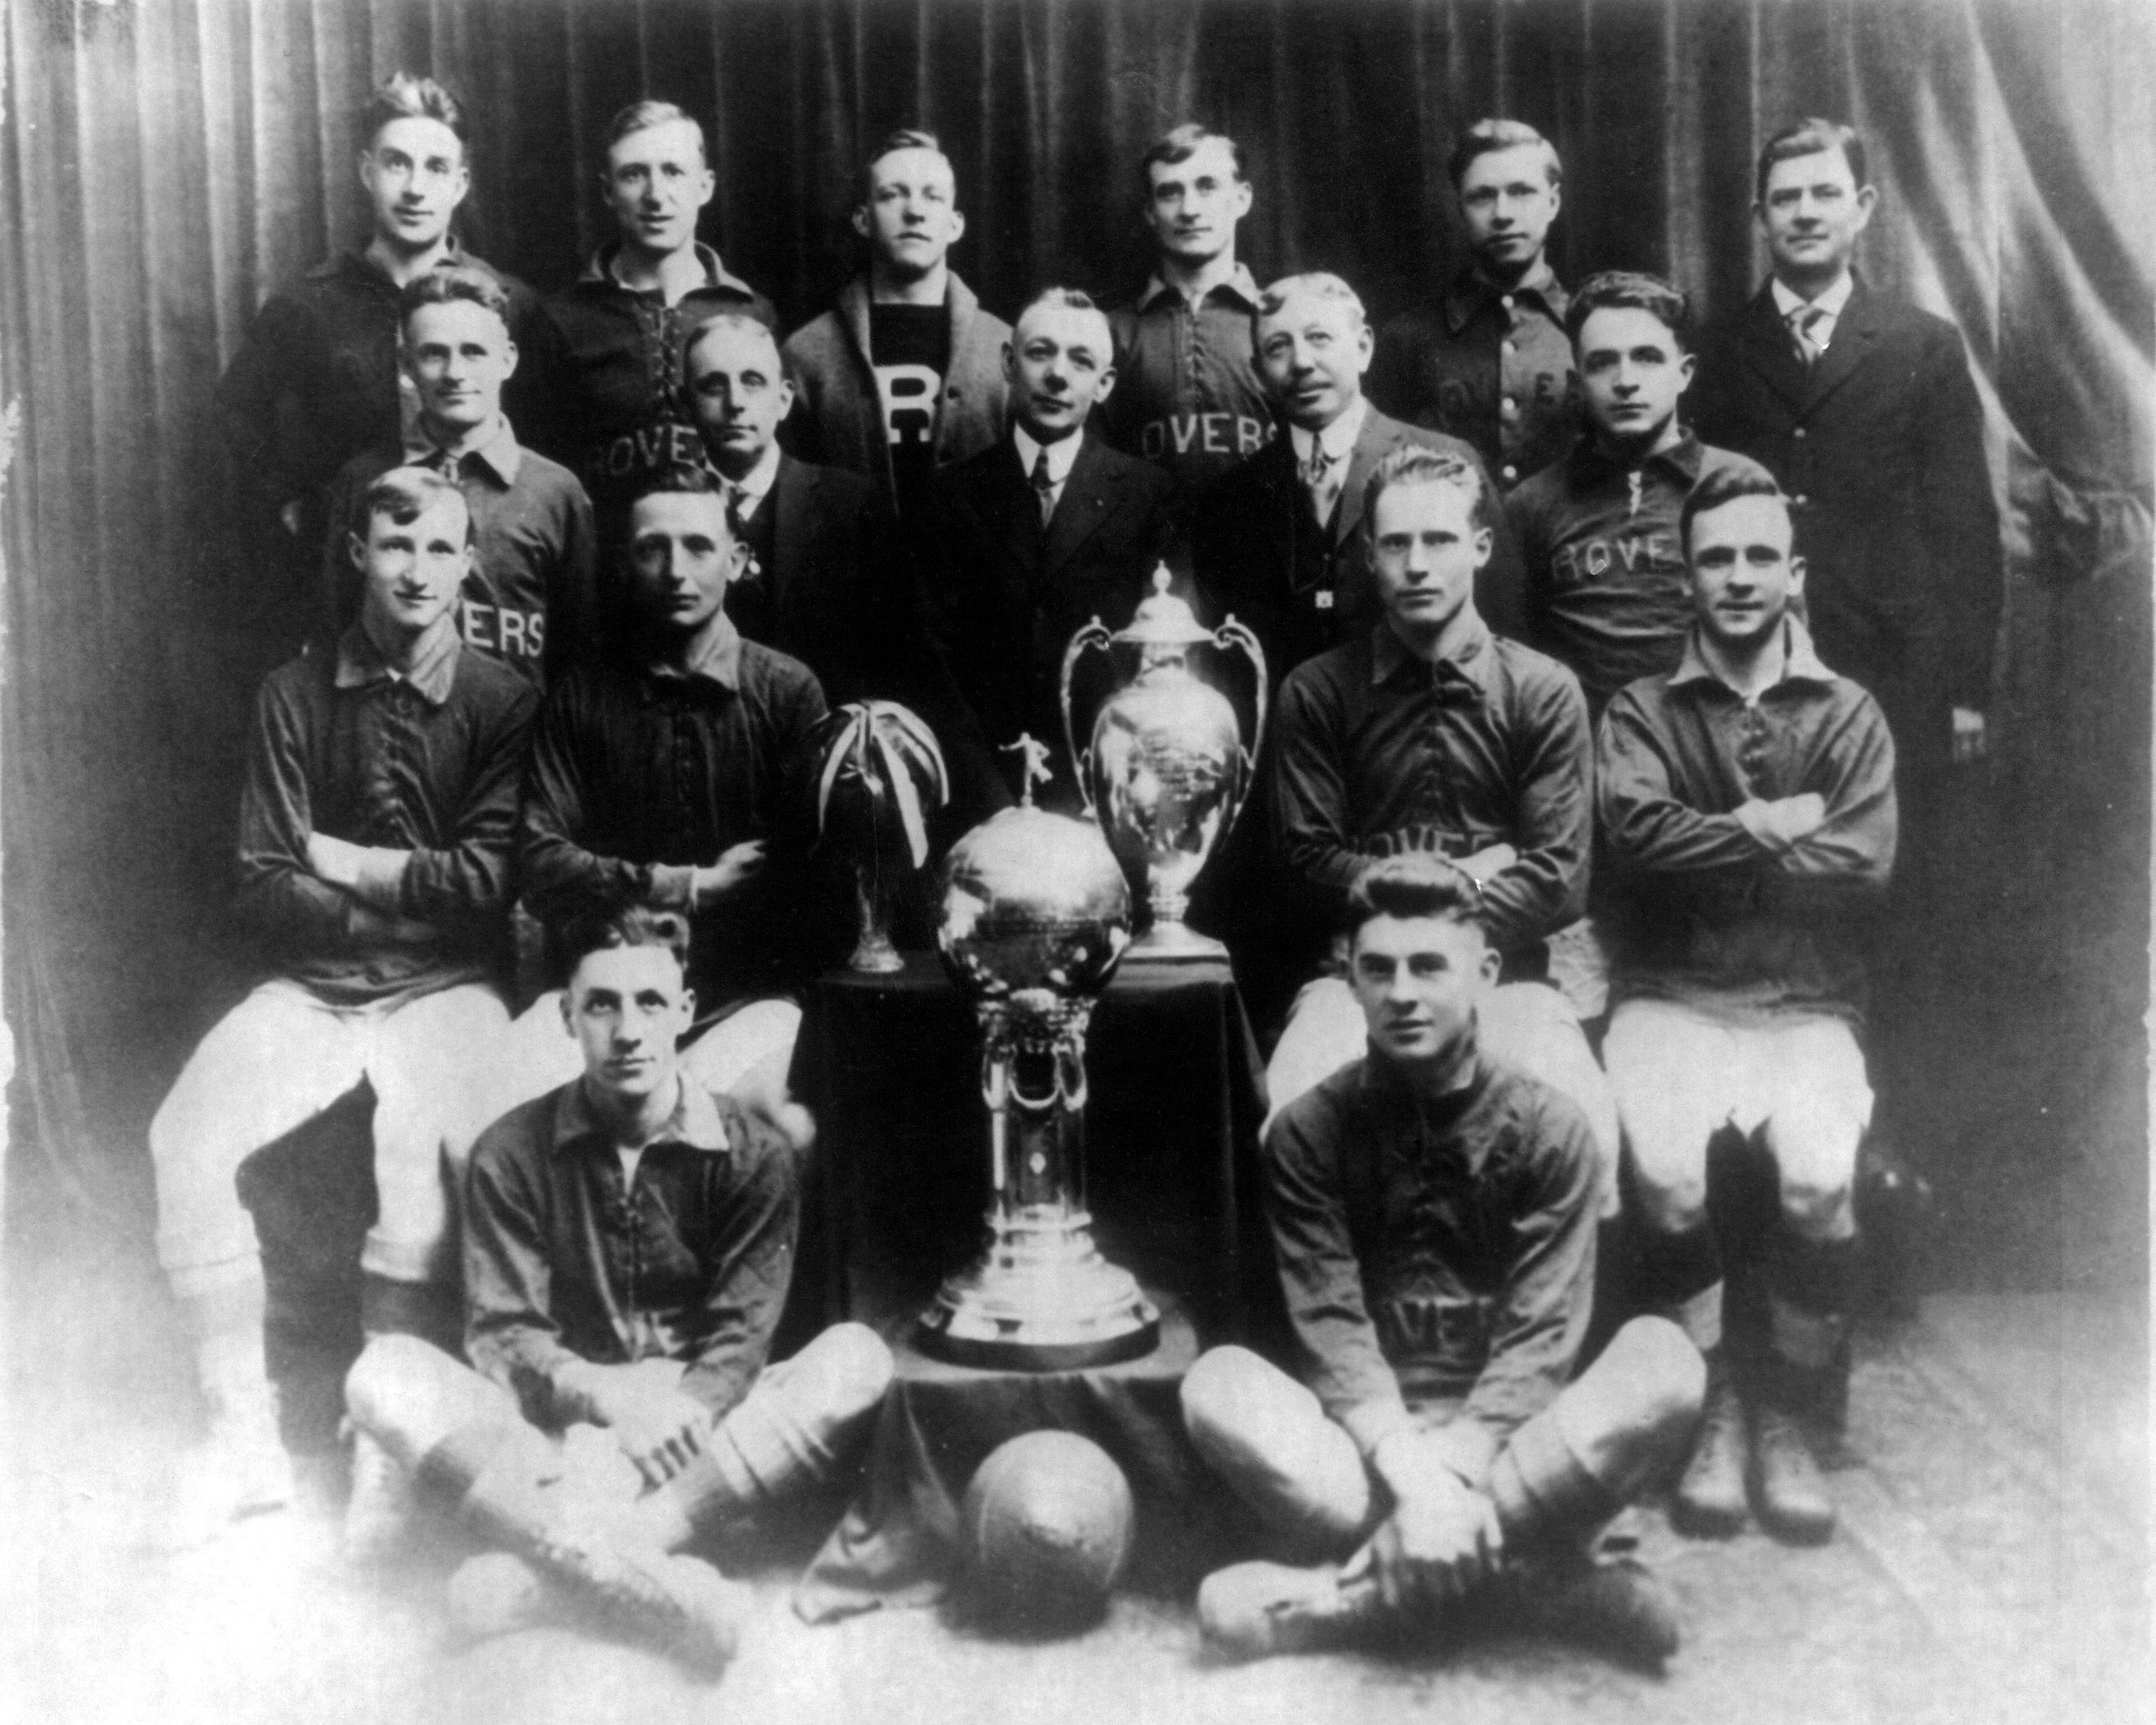 The Fall River Rovers in 1917 posing with the National Challenge Cup and Times Cup.